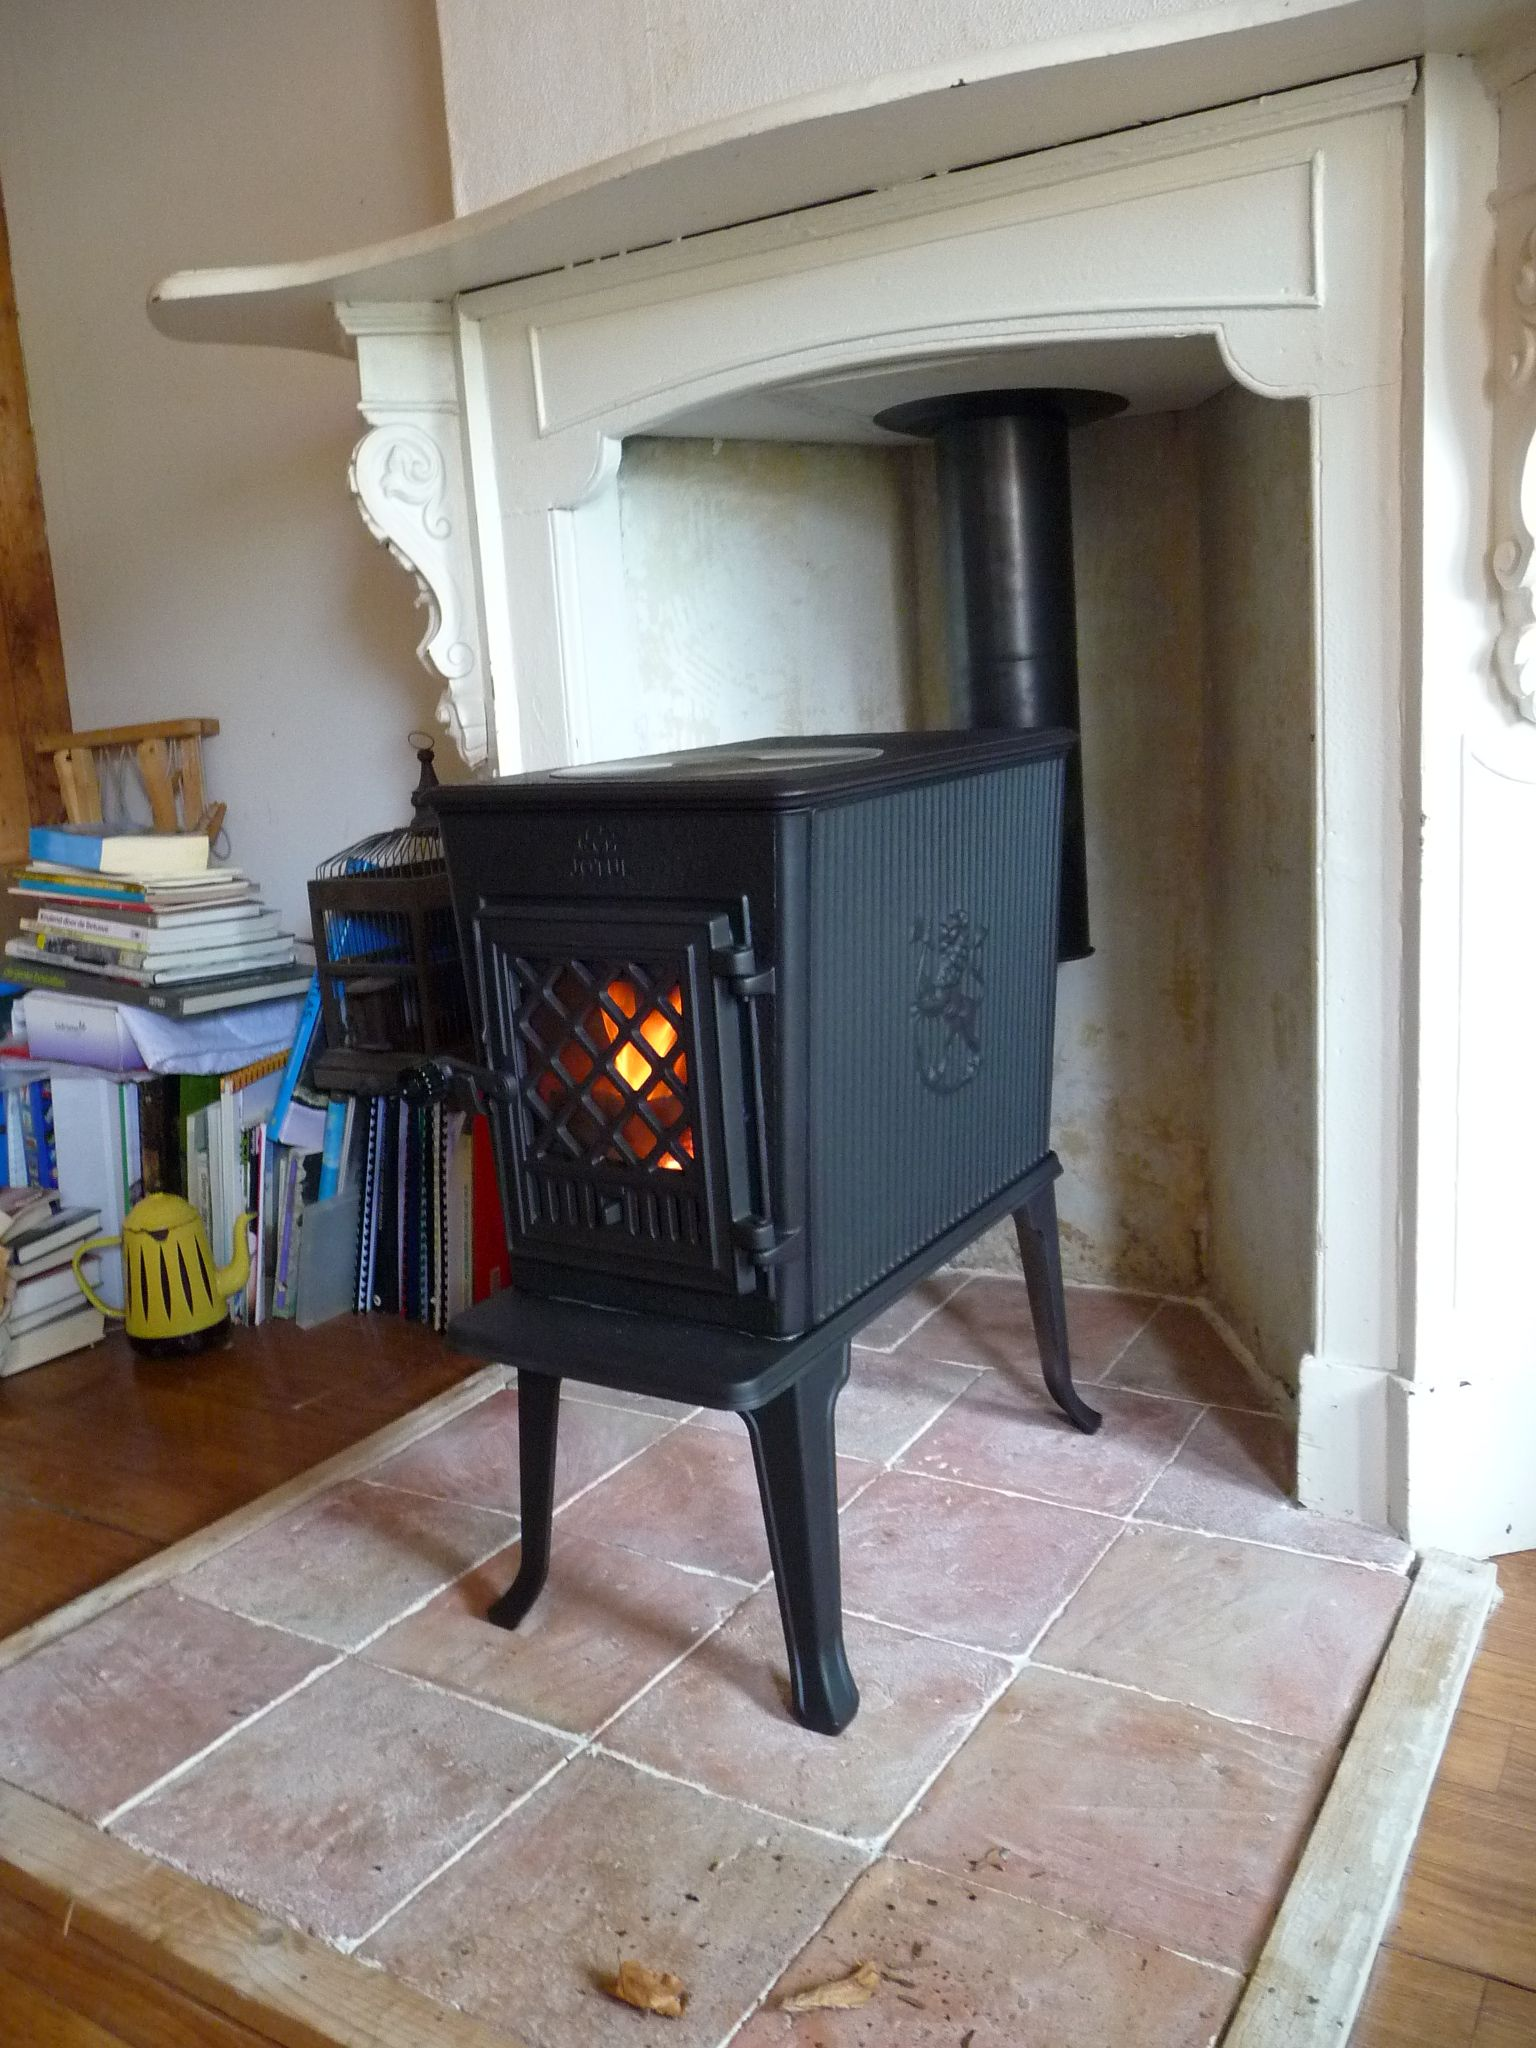 Jotul drawings | This Year's Gifts-To-Be | Pinterest | Stove and Woods